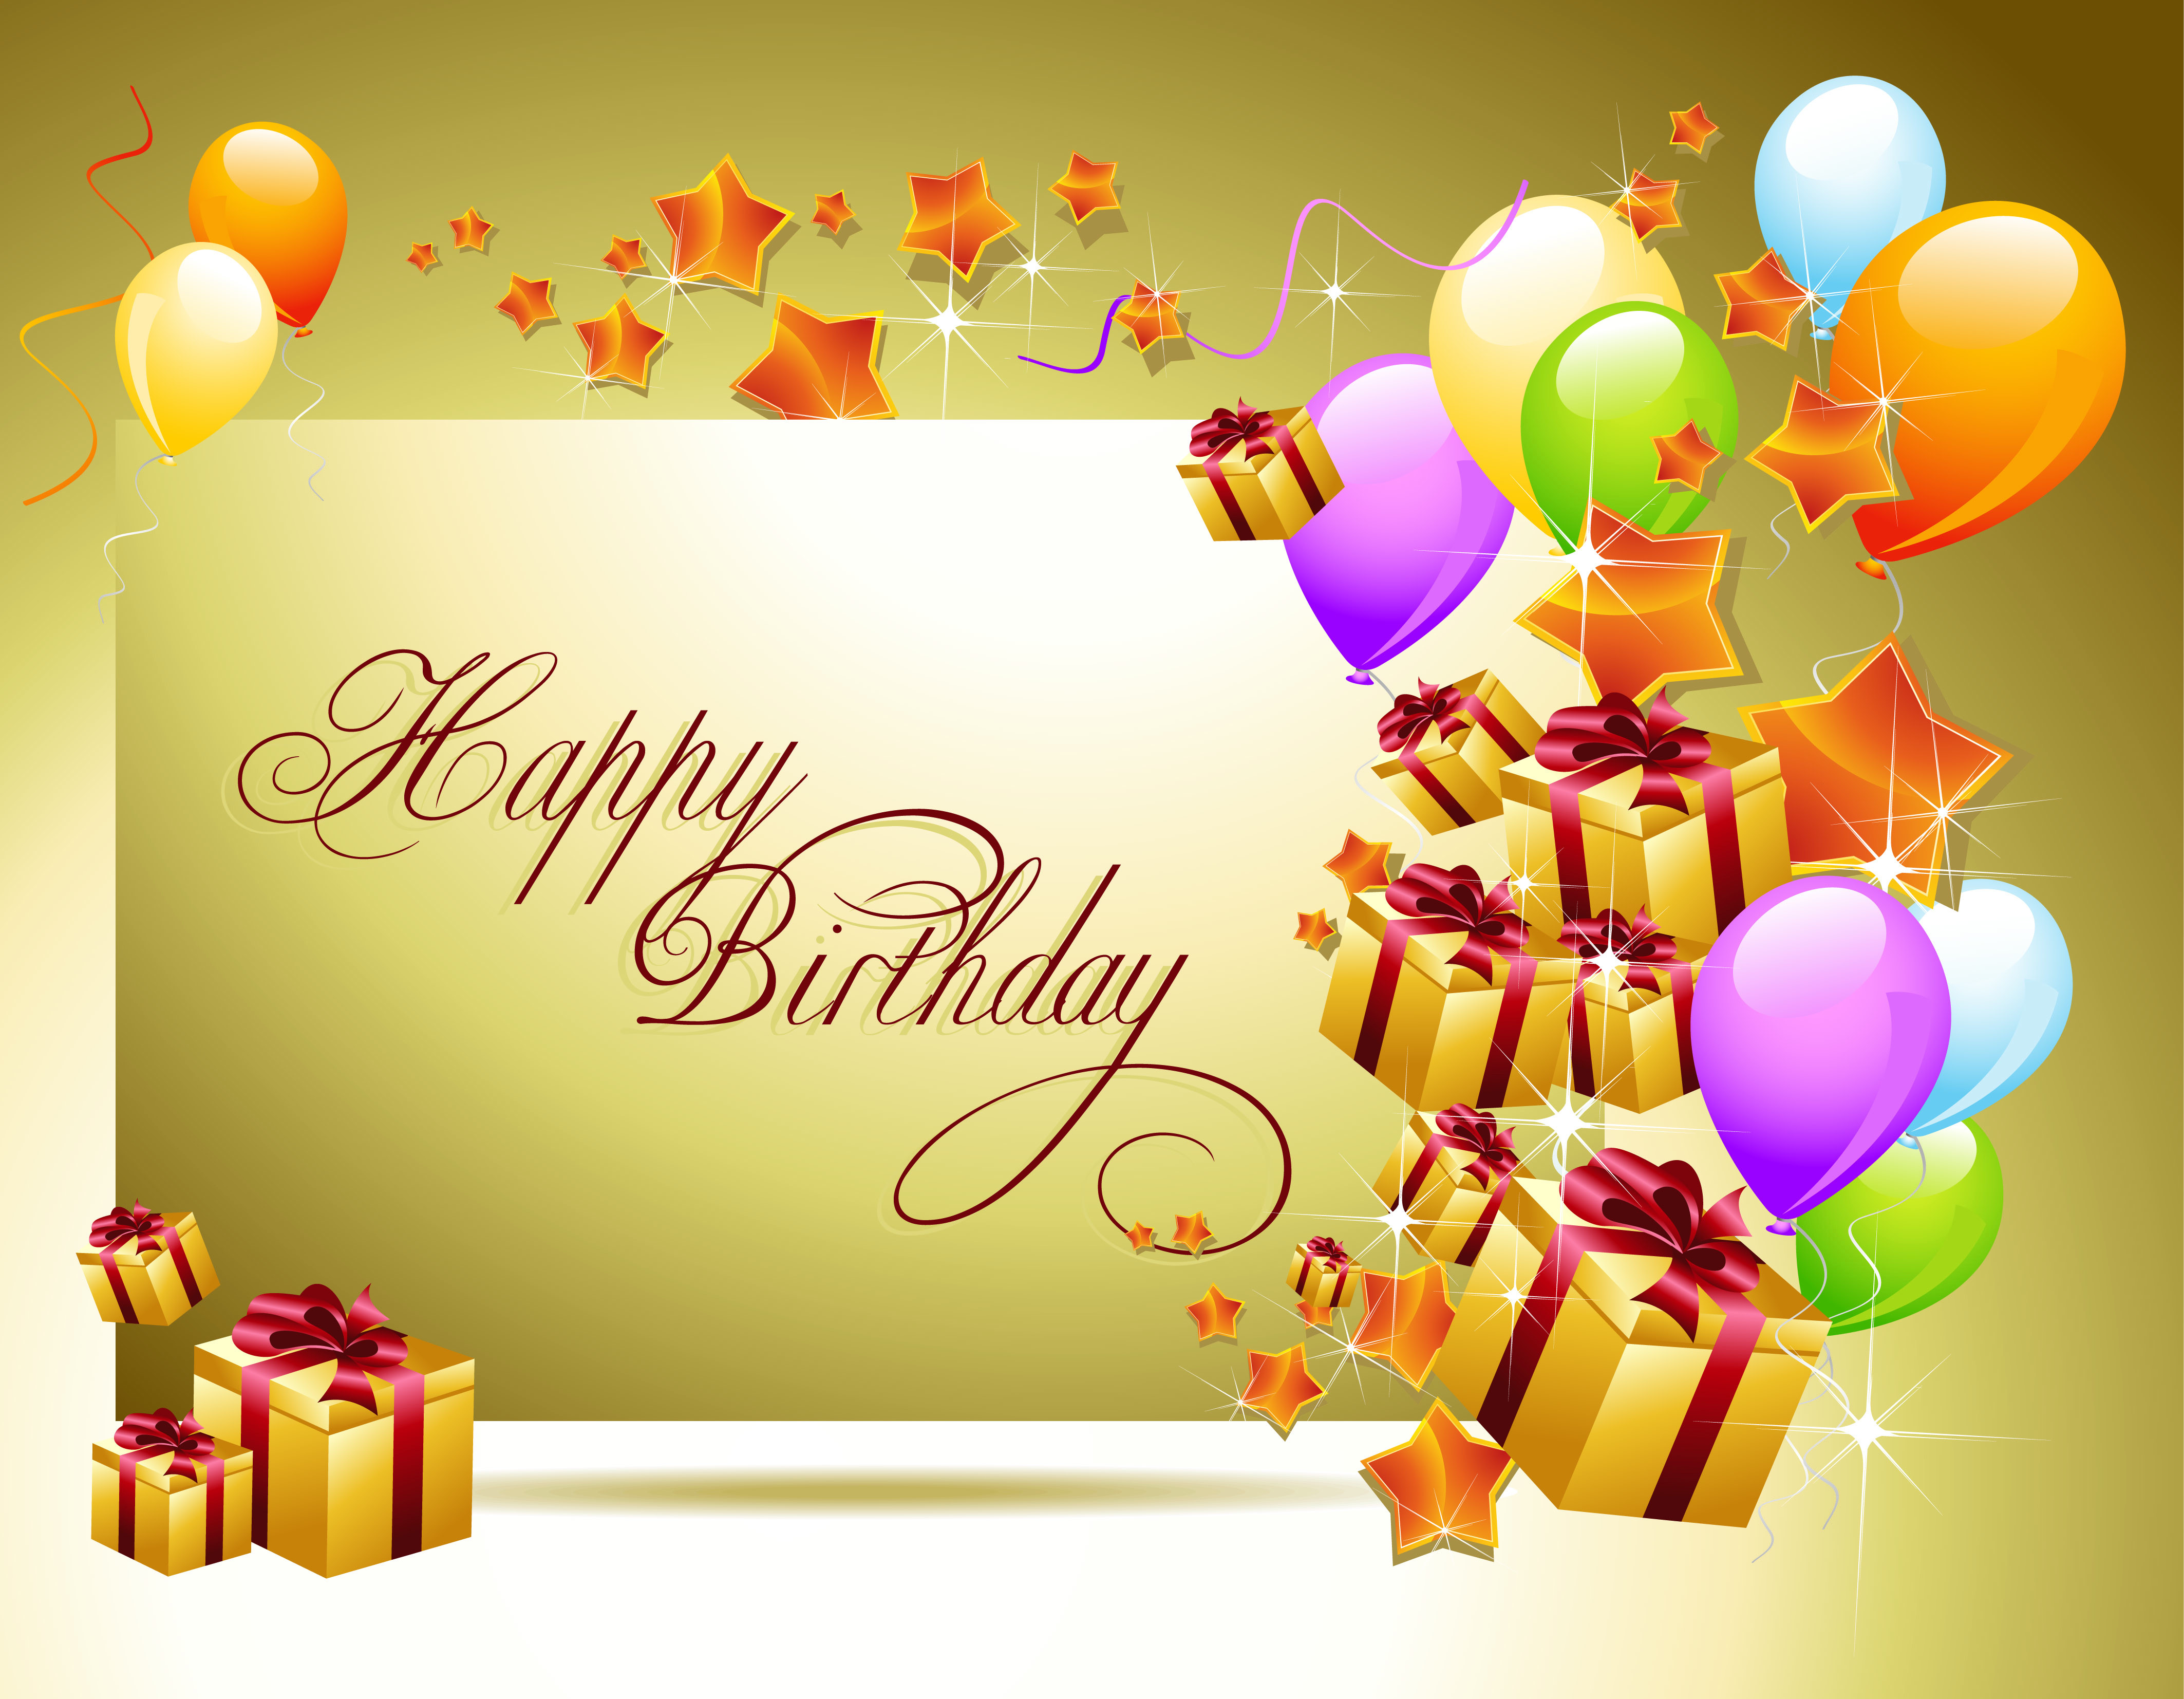 Best ideas about Birthday Wishes Images . Save or Pin Birthday Wishes Wallpaper WallpaperSafari Now.